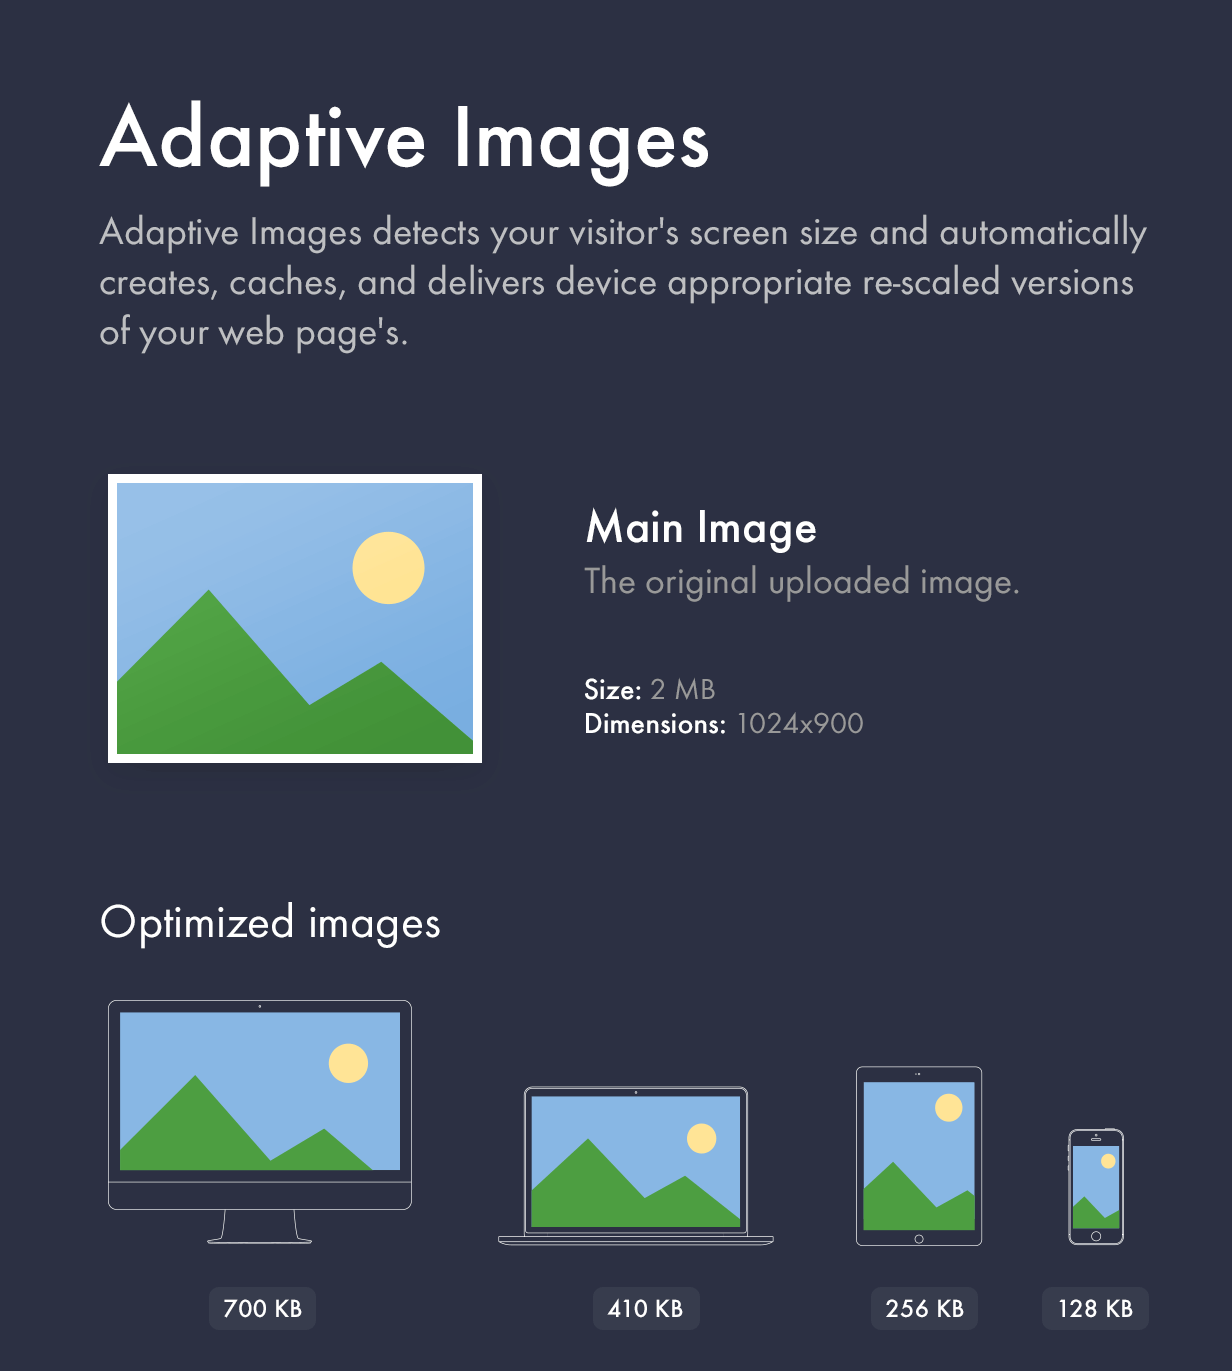 Kalium uses Adaptive Images technology so each device calls the image that is needed for that device